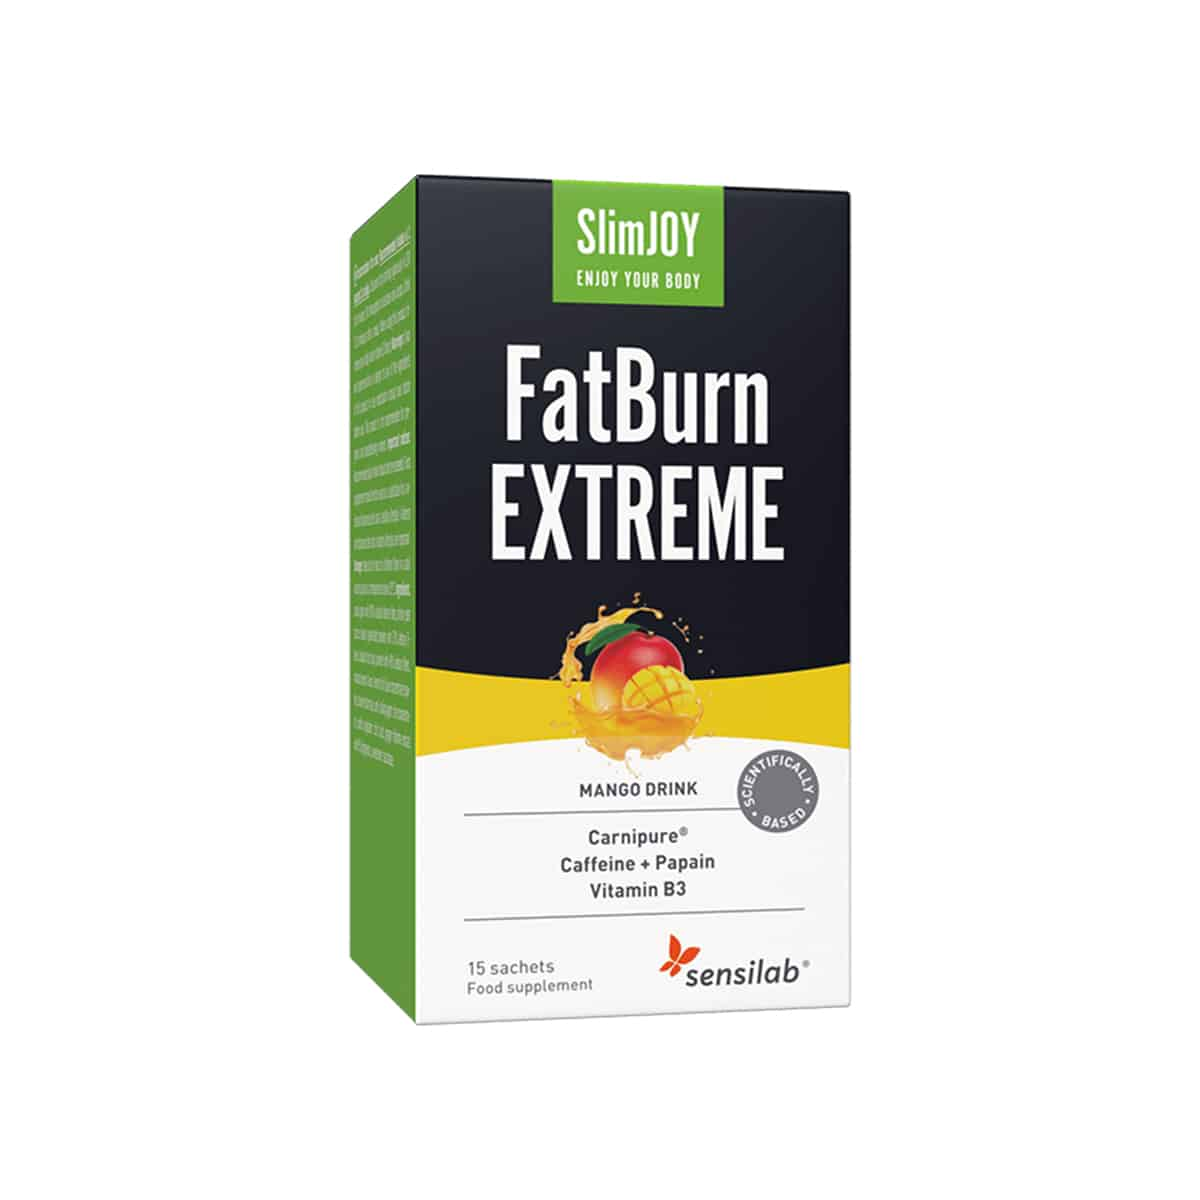 SlimJOY FatBurn Extreme Ireland Fat Muscle Energy